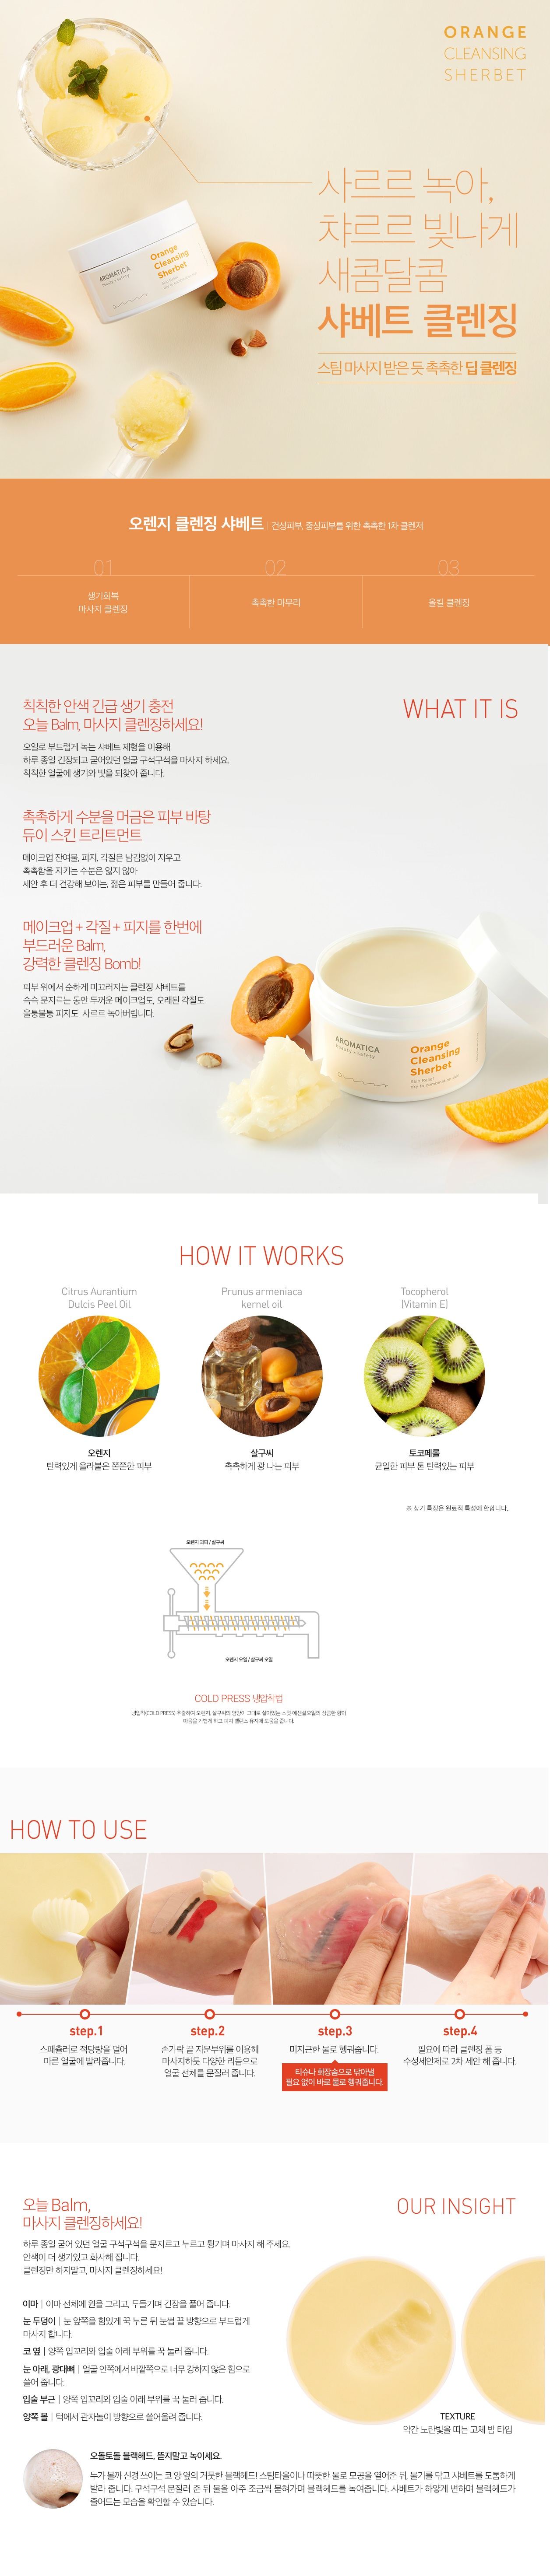 Aromatica Orange Cleansing Sherbetl korean cosmetic cleansing product online shop malaysia China india1